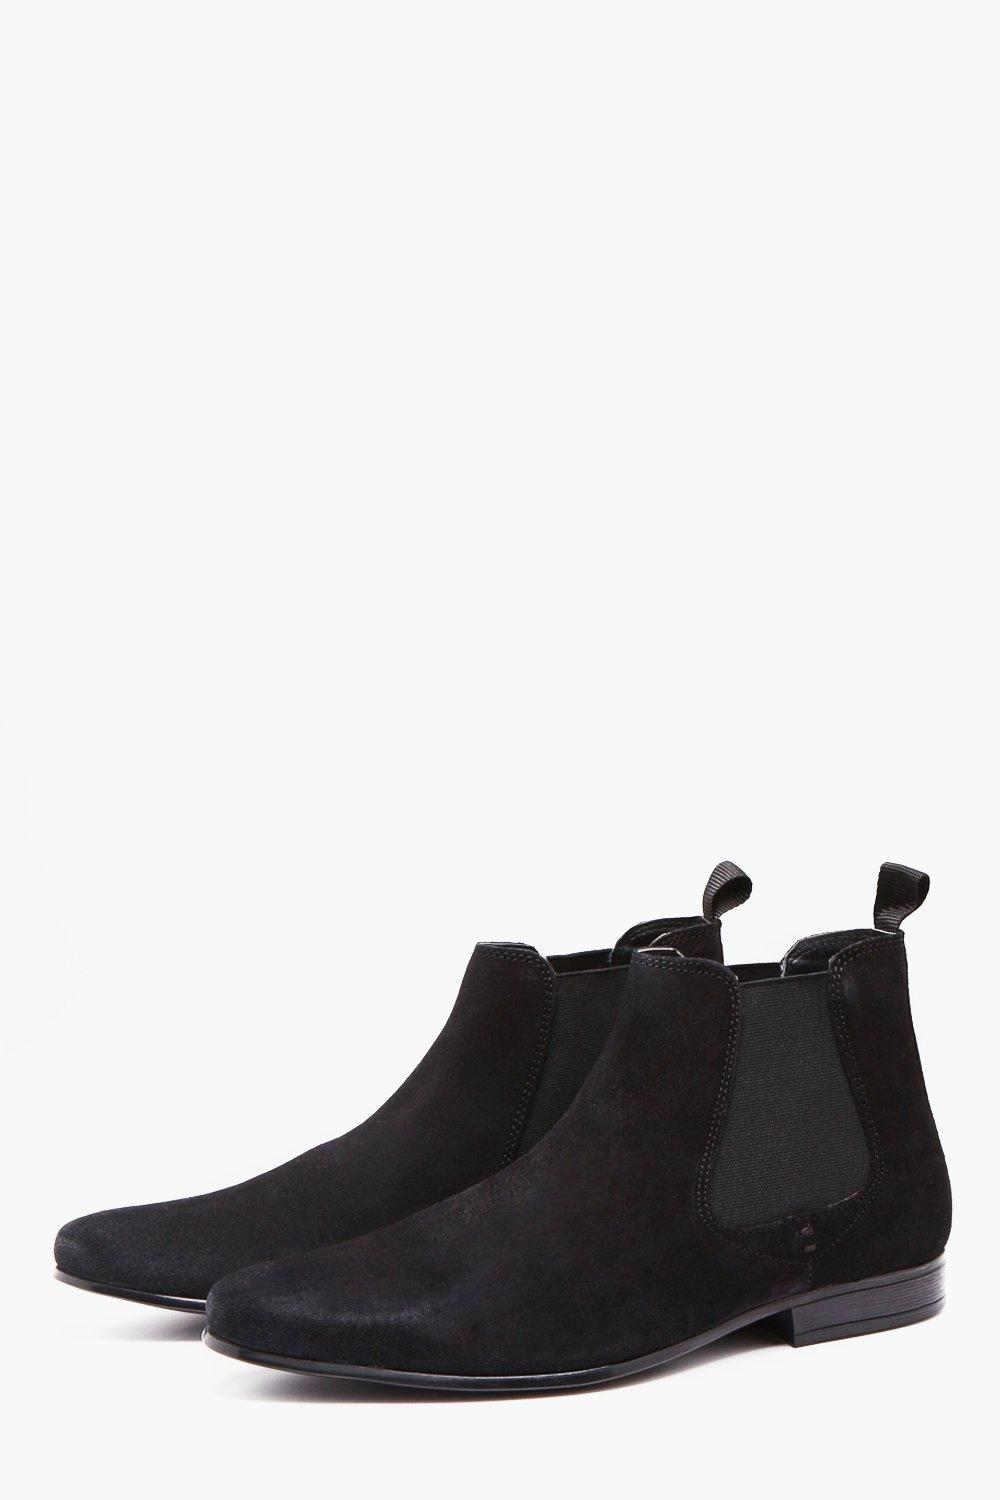 boohooMAN black Real Suede Smart Chelsea Boot